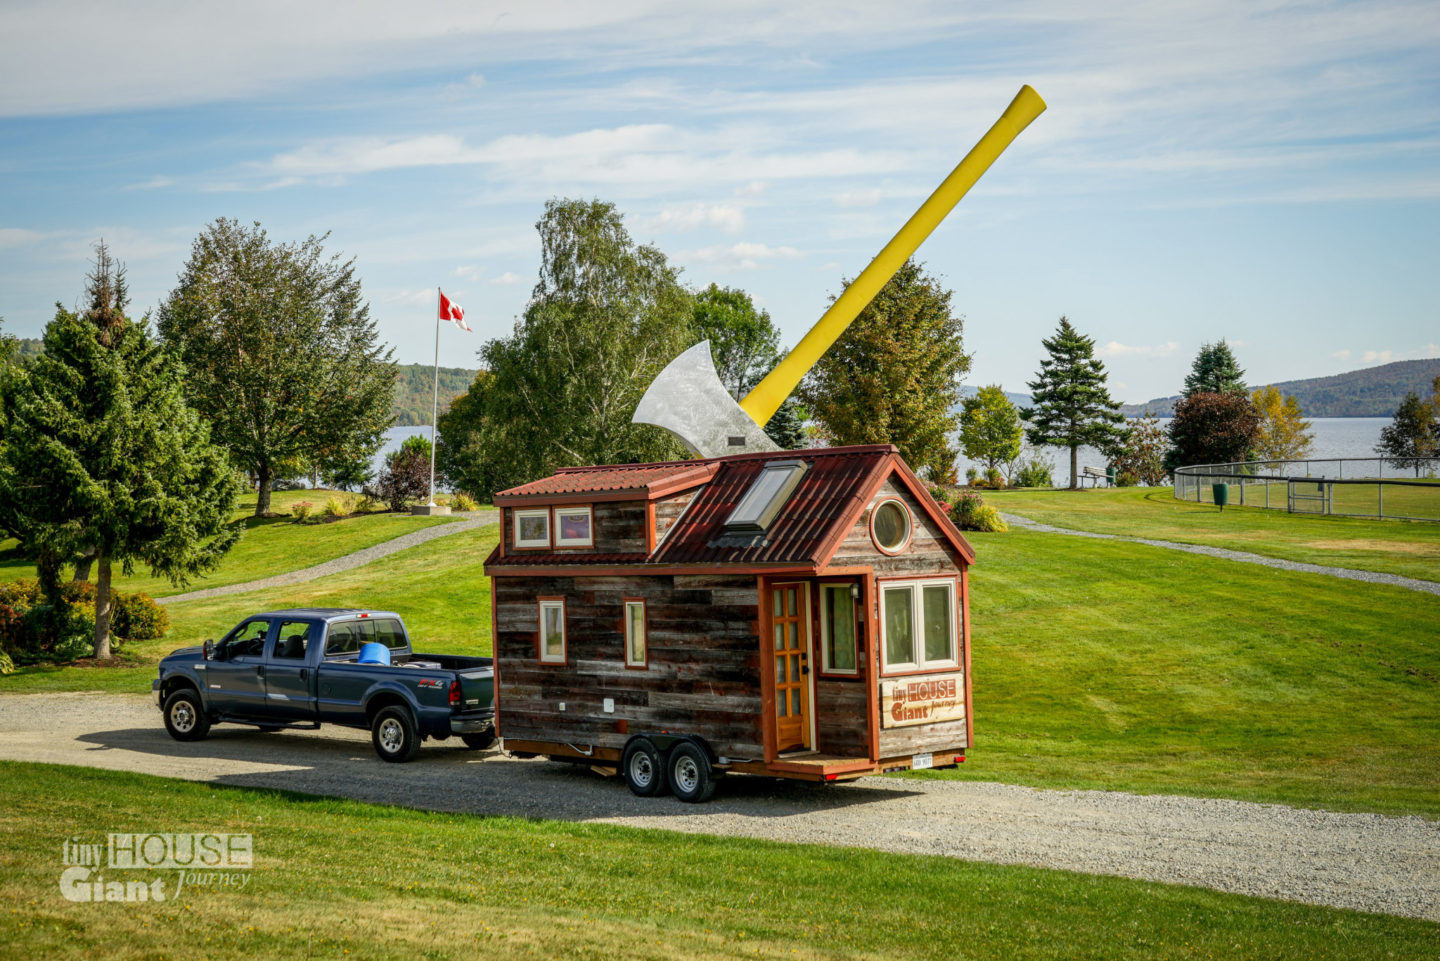 New Brunswick: Magical Creatures & Colorful Sprinkles